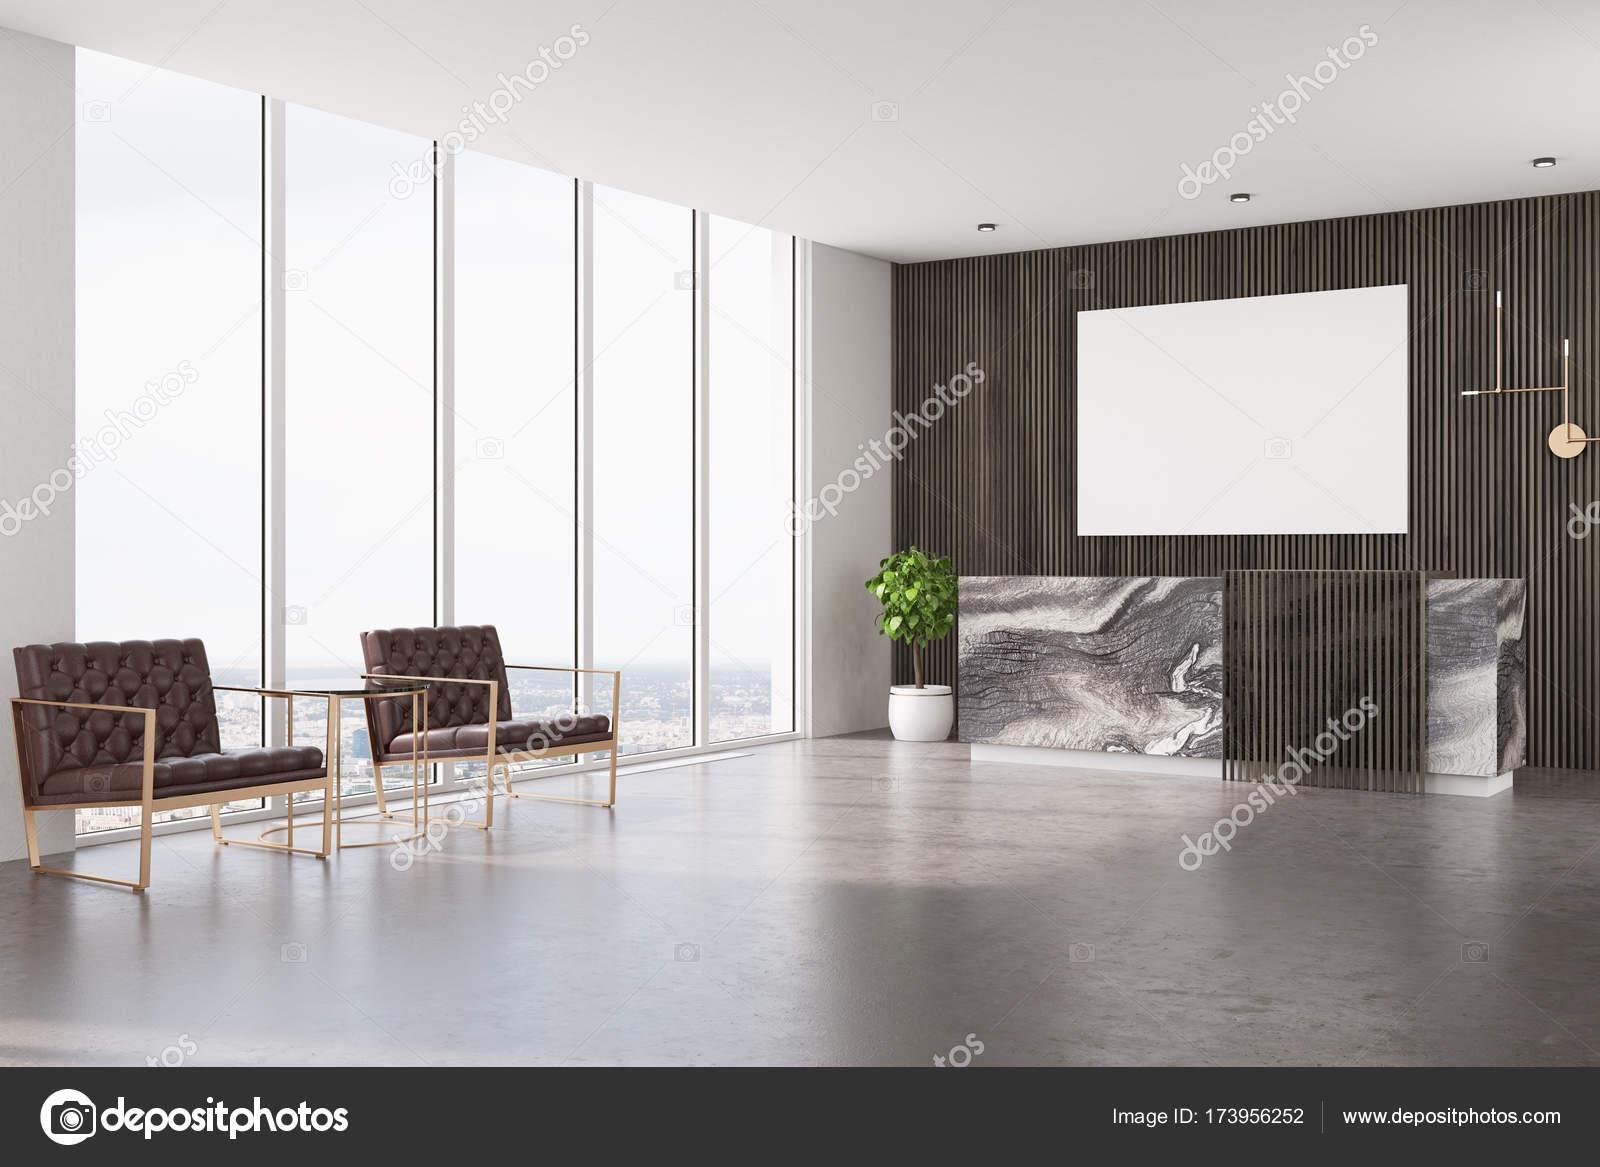 Dark Wooden Office Interior With Loft Windows, A Concrete Floor, Two Brown  Armchairs And A Marble And Wooden Reception Table With A Poster Above It.